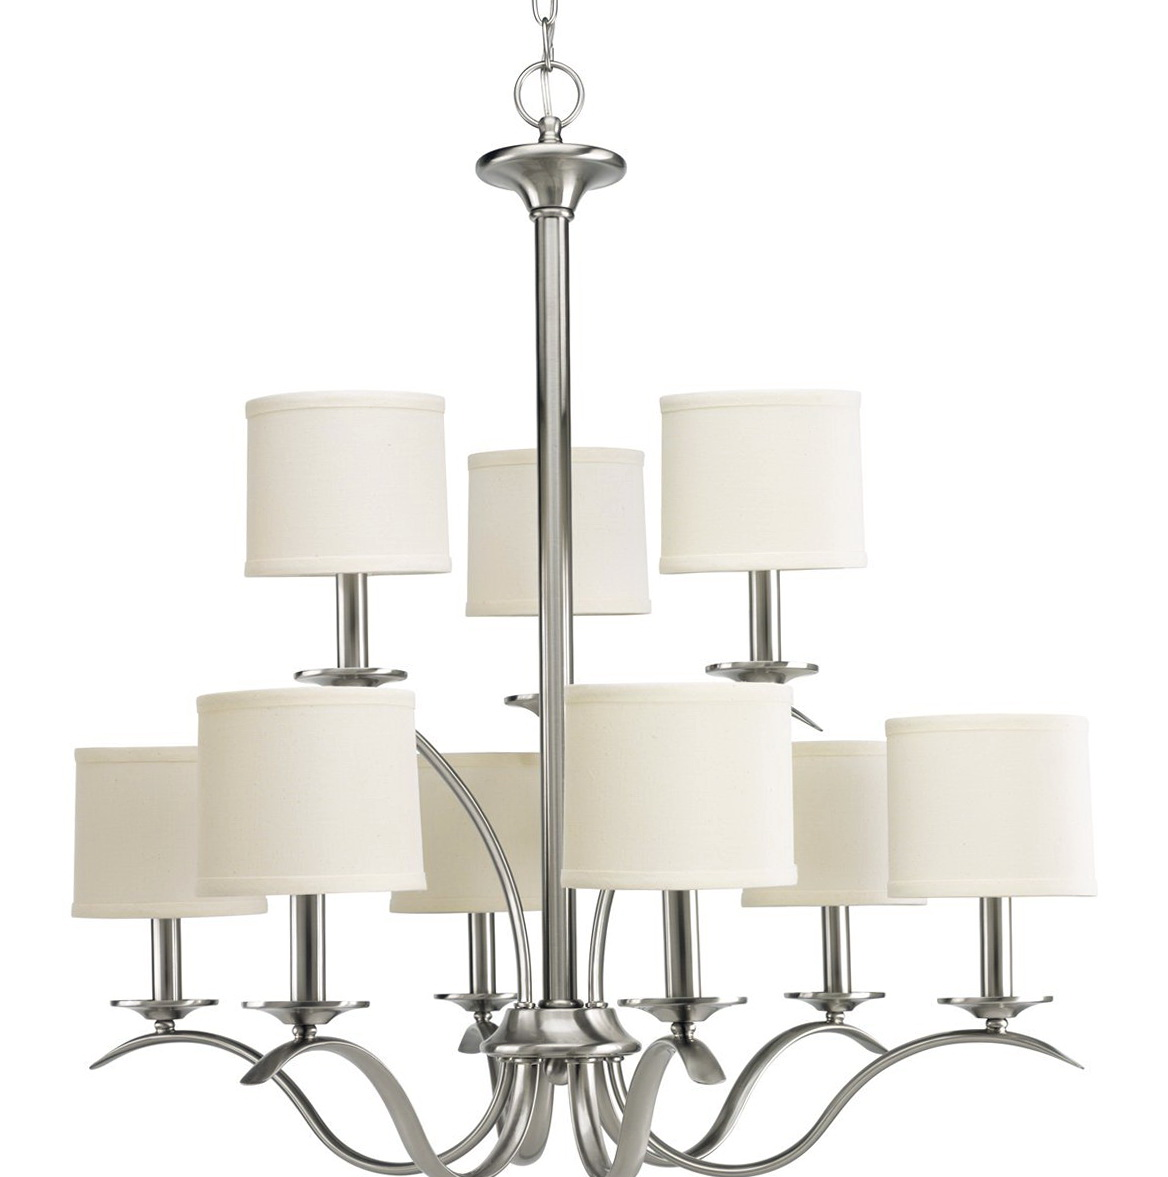 Brushed Nickel Chandelier With Shades